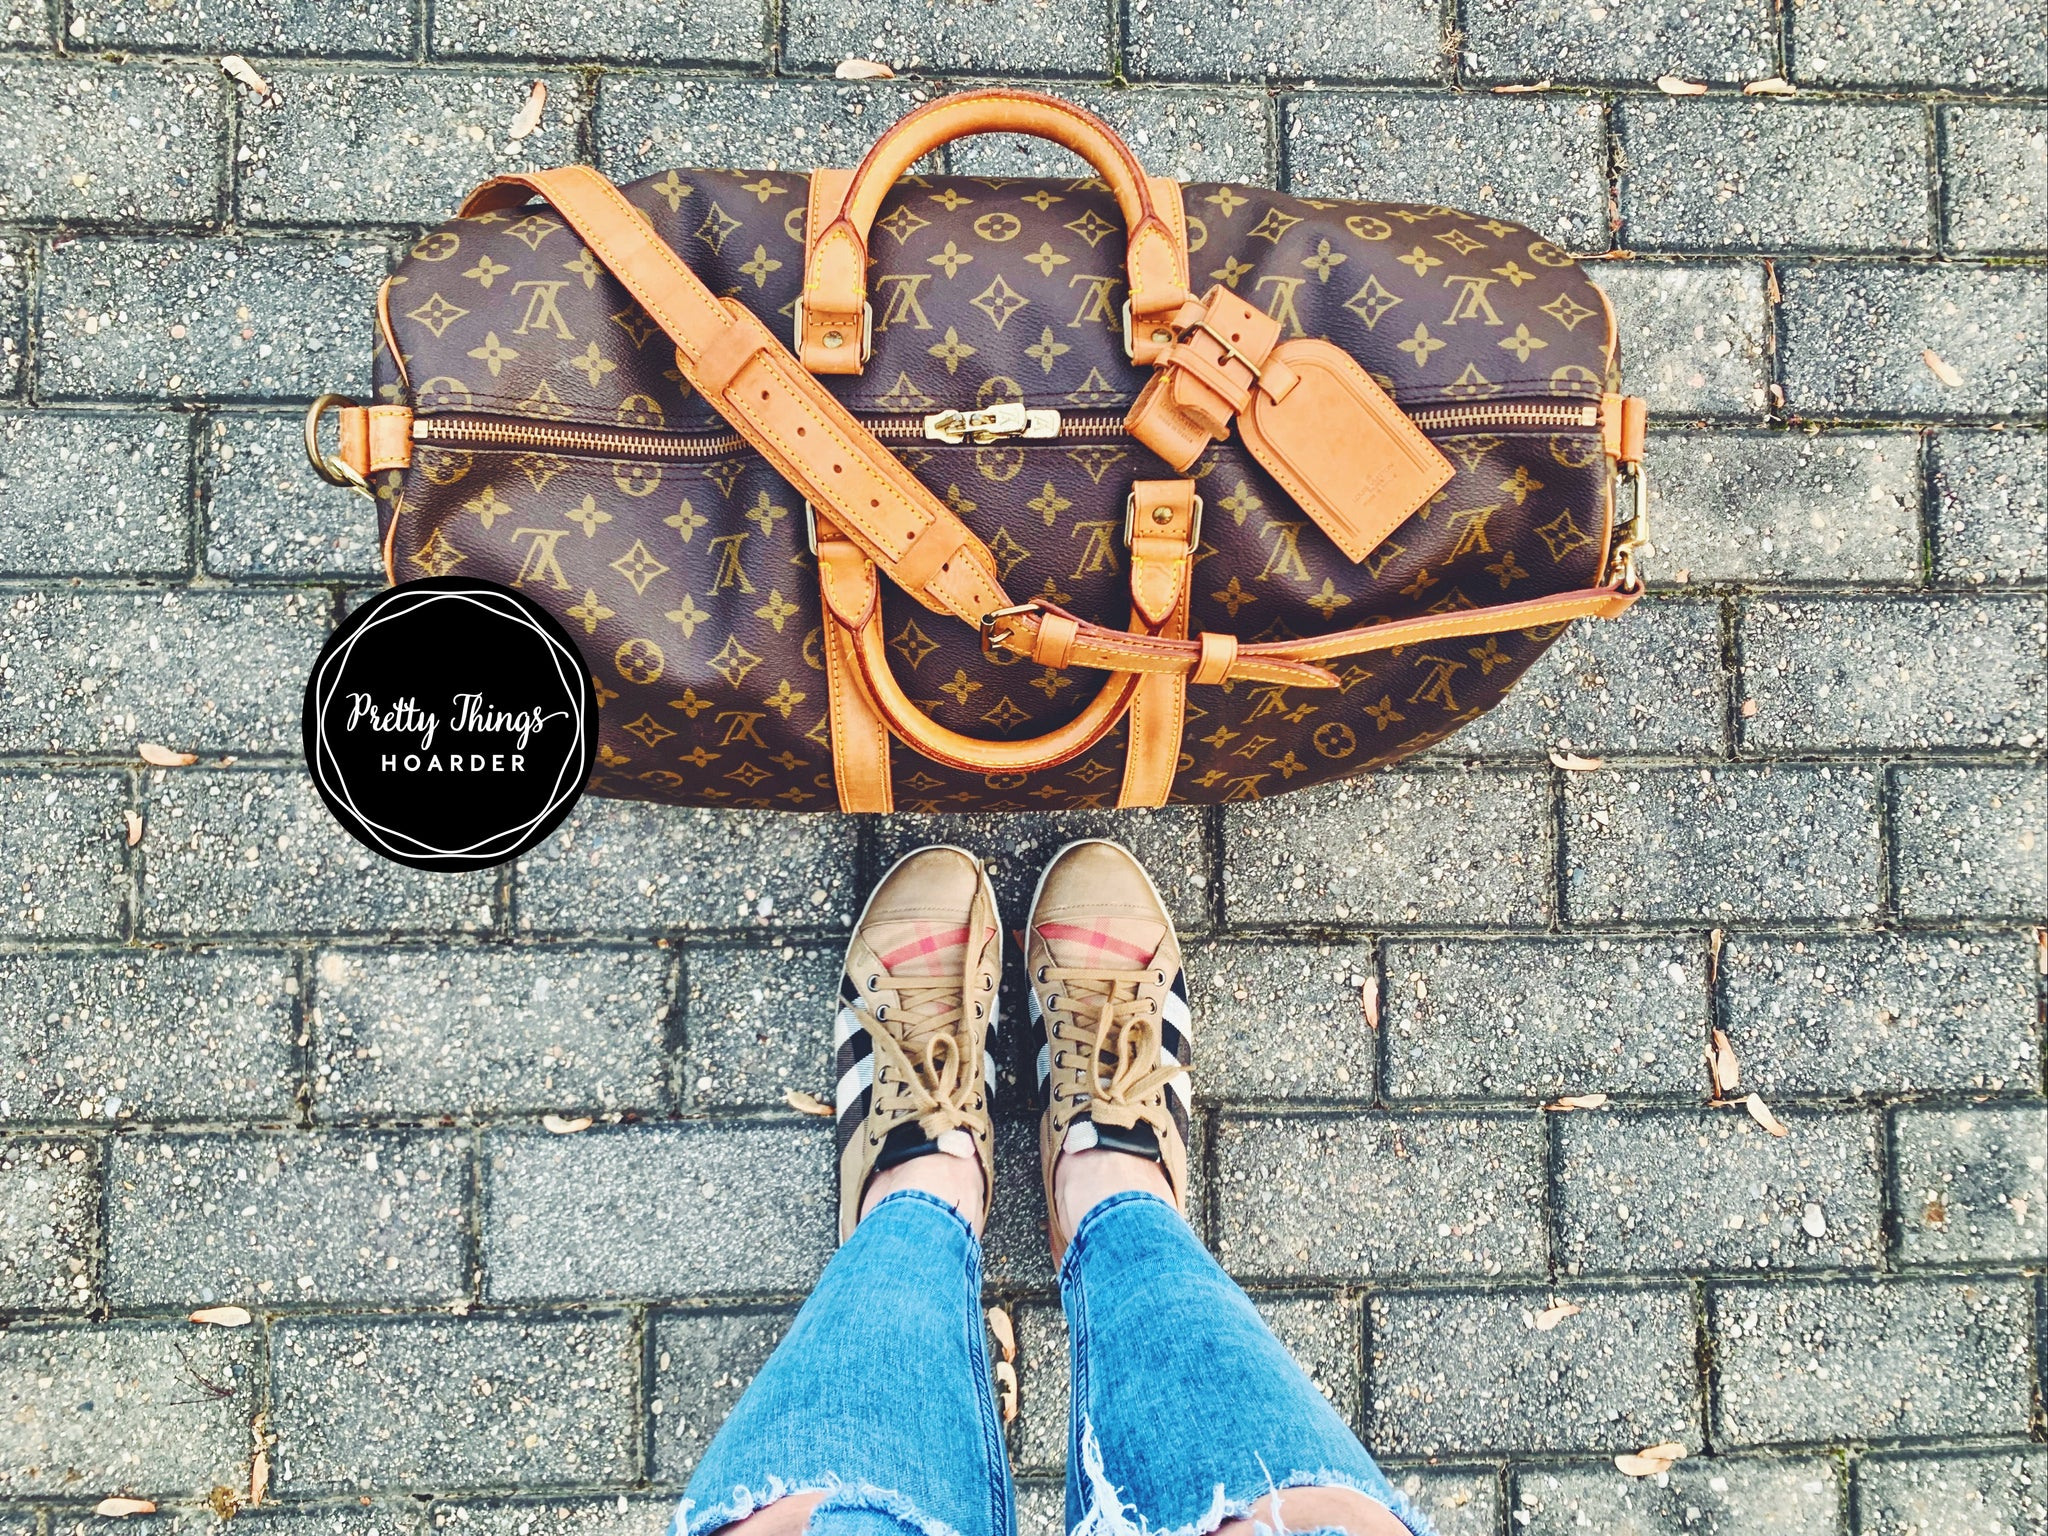 LOUIS VUITTON Keepall Bandouliere 50 Duffel Bag